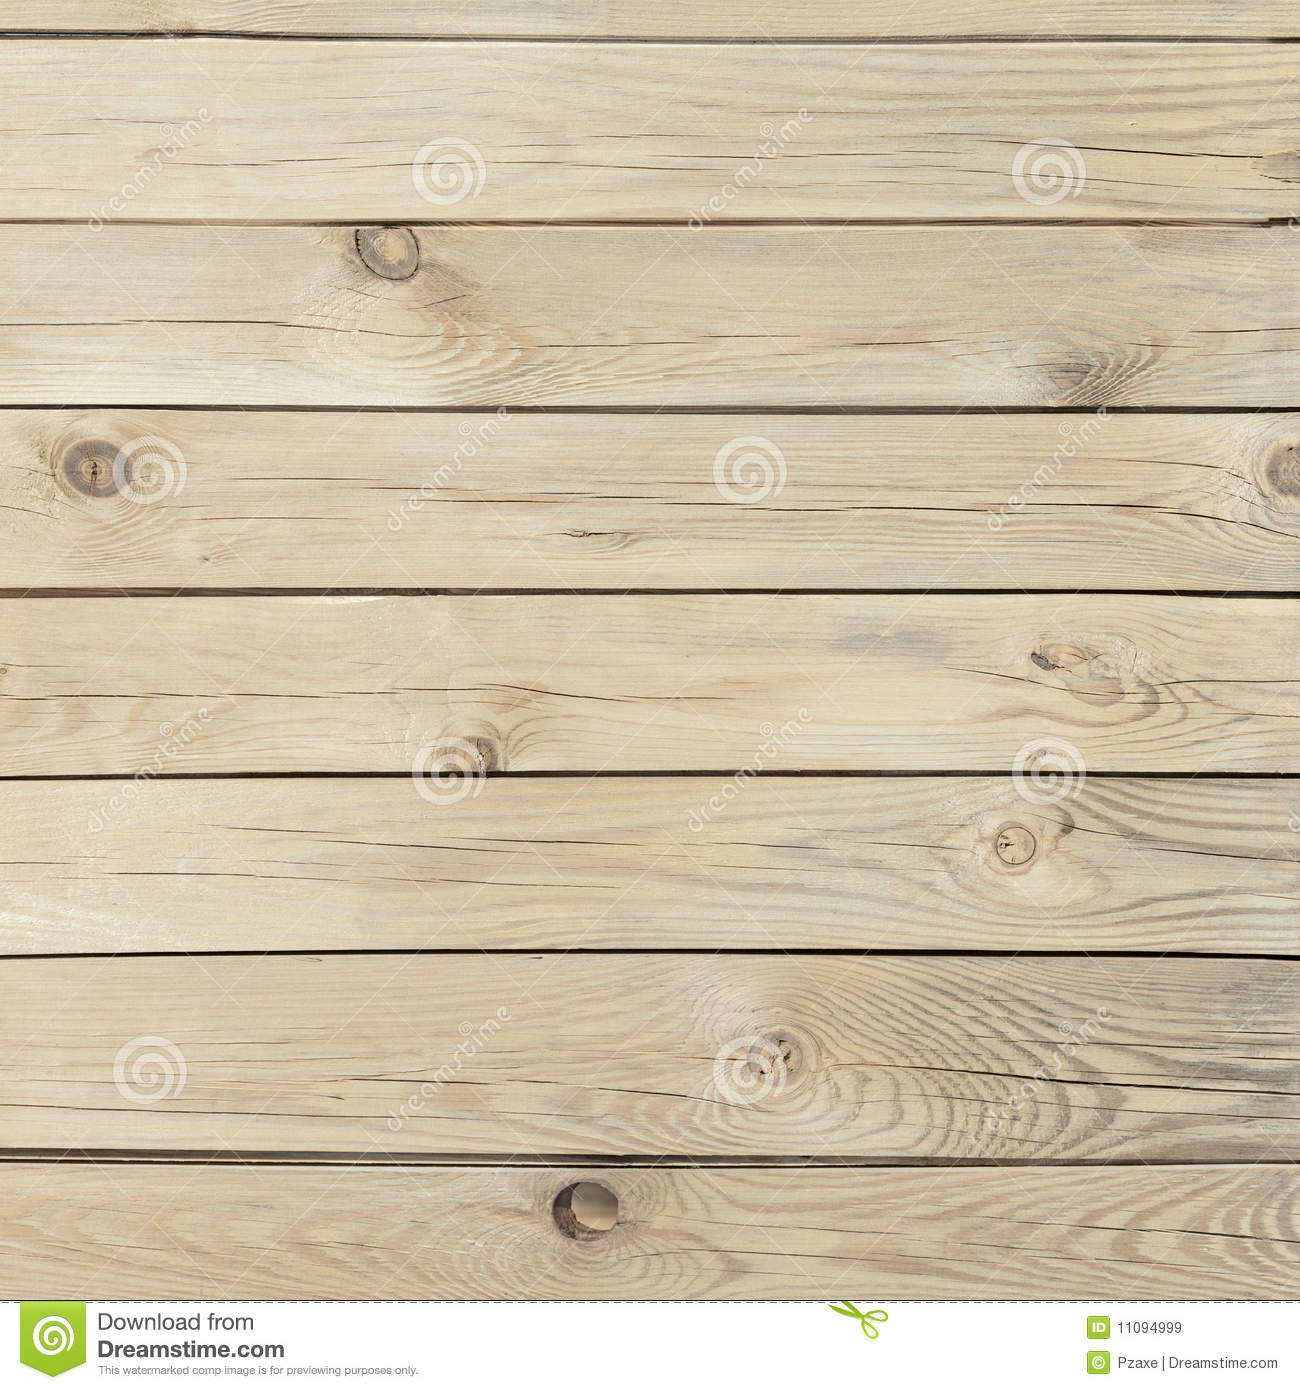 Pine Wooden Texture With Knots And Cracks Royalty Free Stock Images Image 11094999